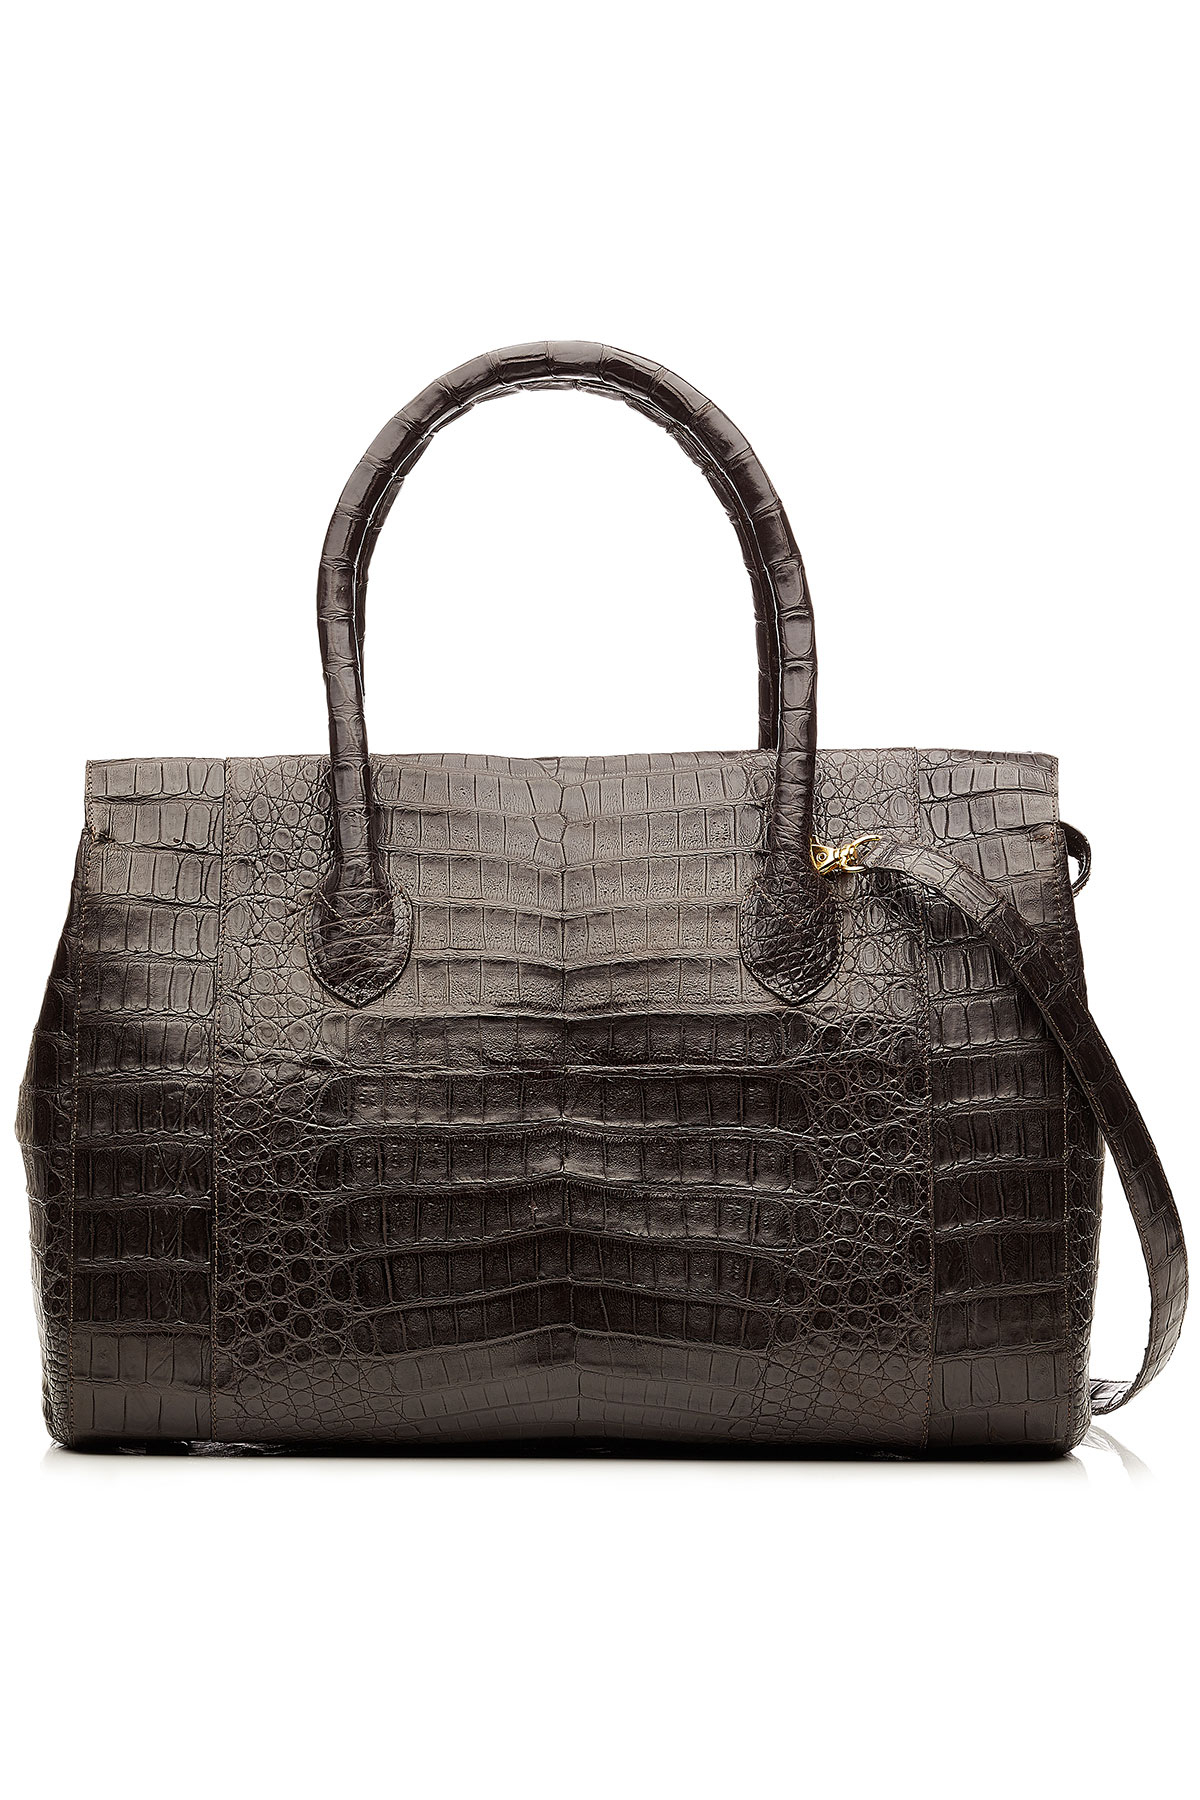 Nancy gonzalez crocodile tote brown in brown lyst for Nancy gonzalez crocodile tote